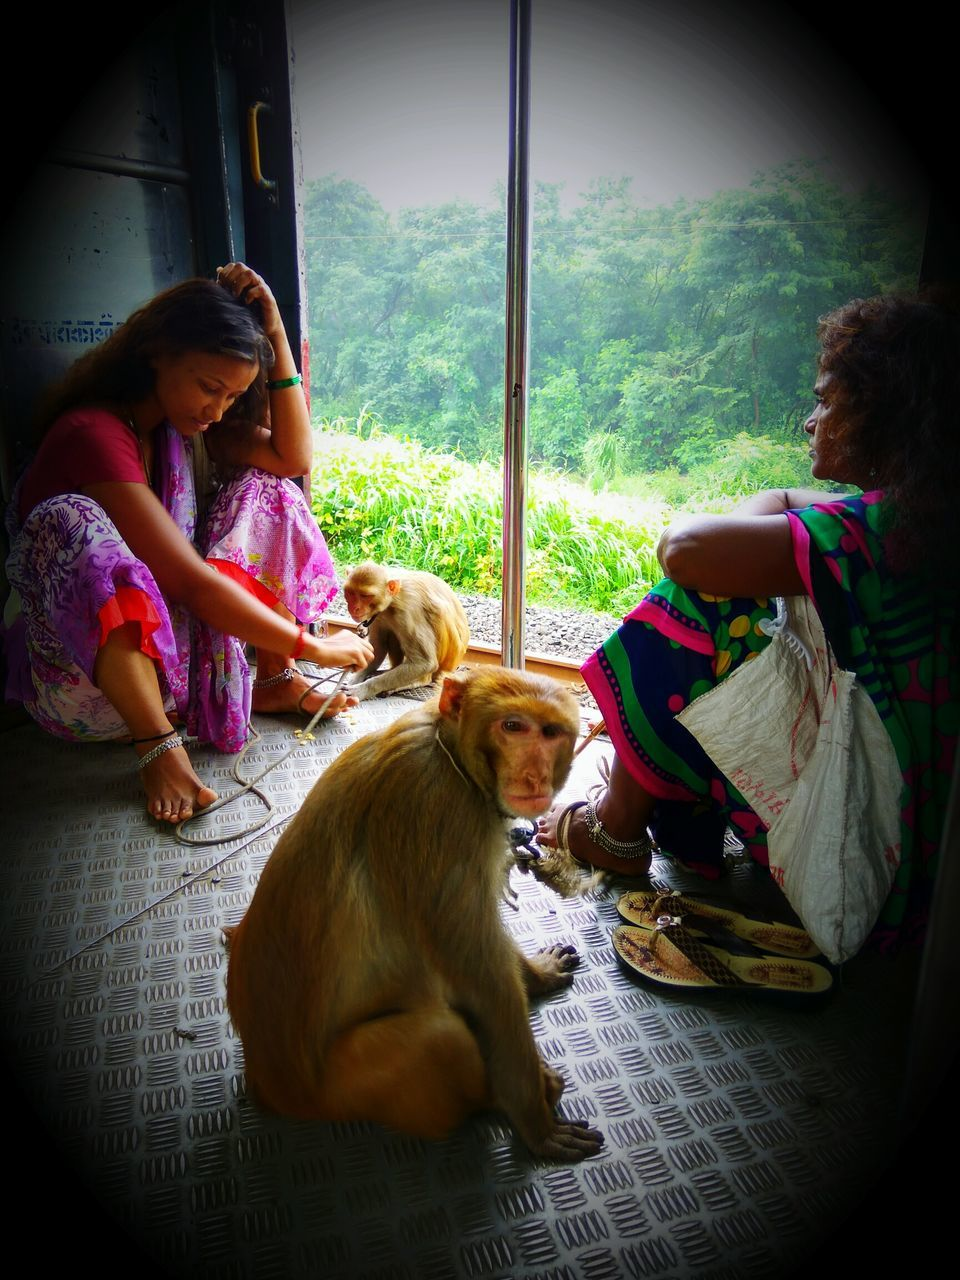 real people, togetherness, girls, pets, dog, sitting, animal themes, childhood, full length, indoors, domestic animals, day, casual clothing, bonding, mammal, elementary age, lifestyles, friendship, relaxation, tree, young adult, people